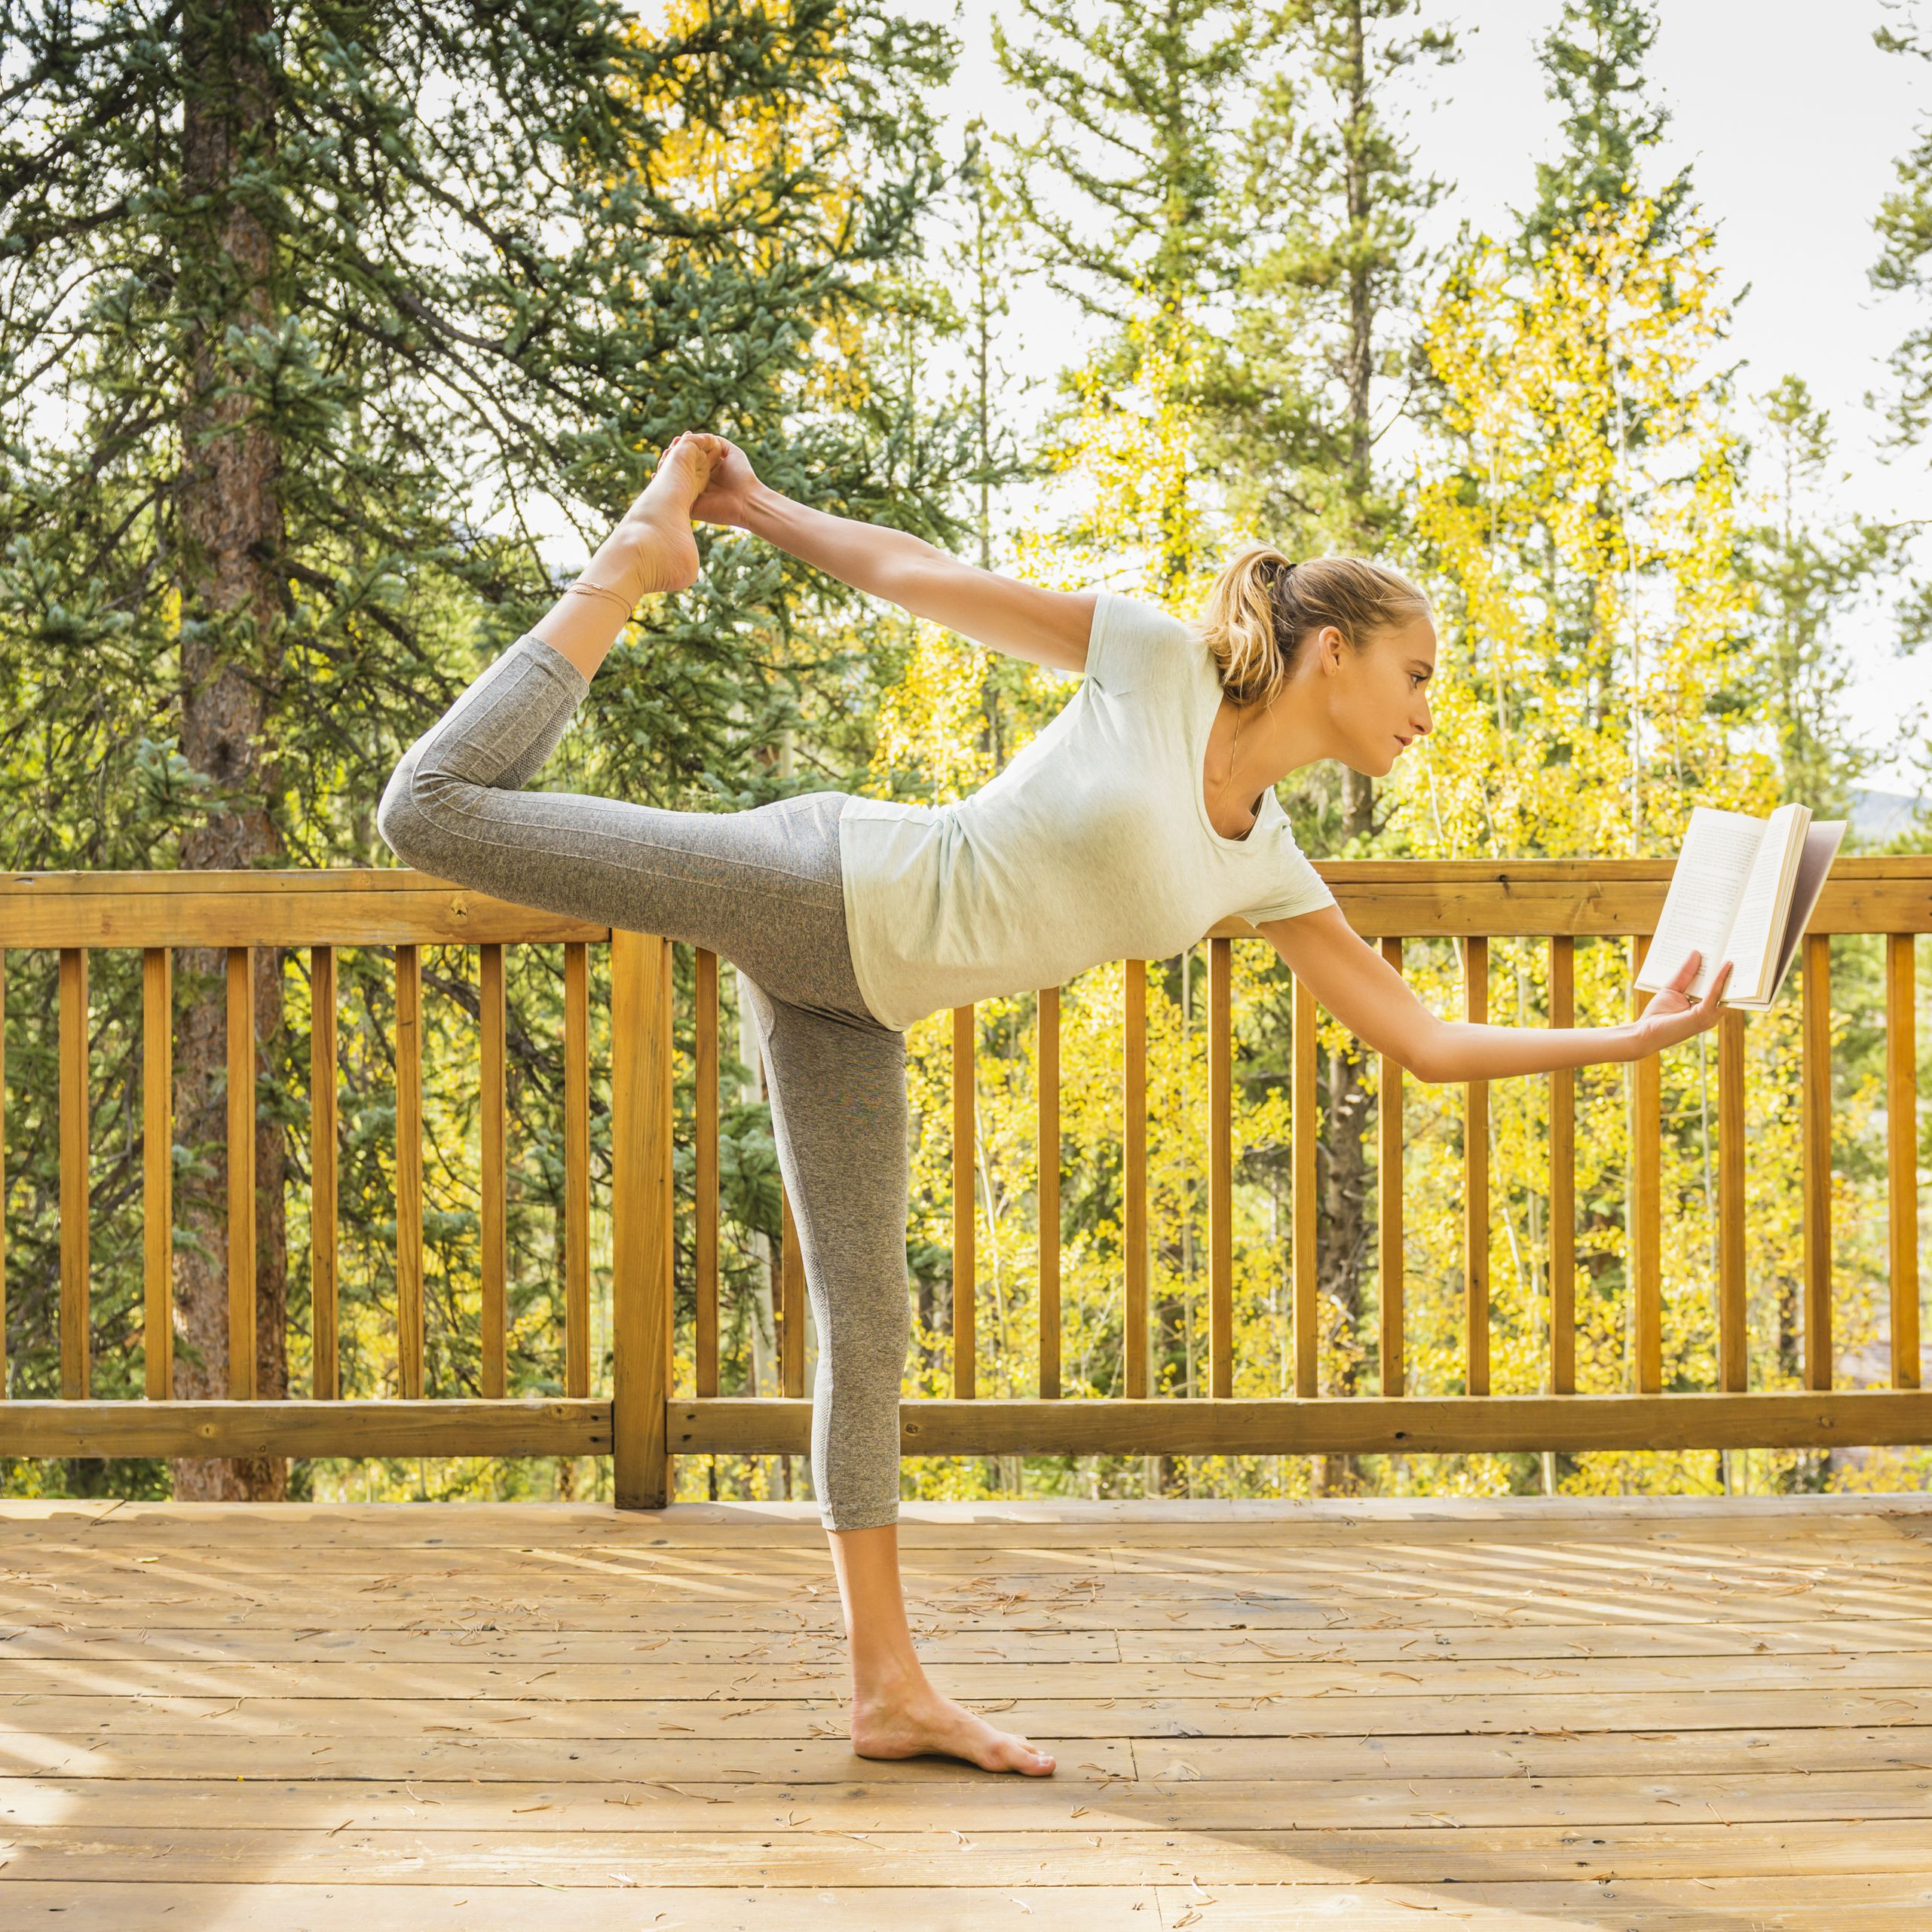 The 9 Best Yoga Books of 2019